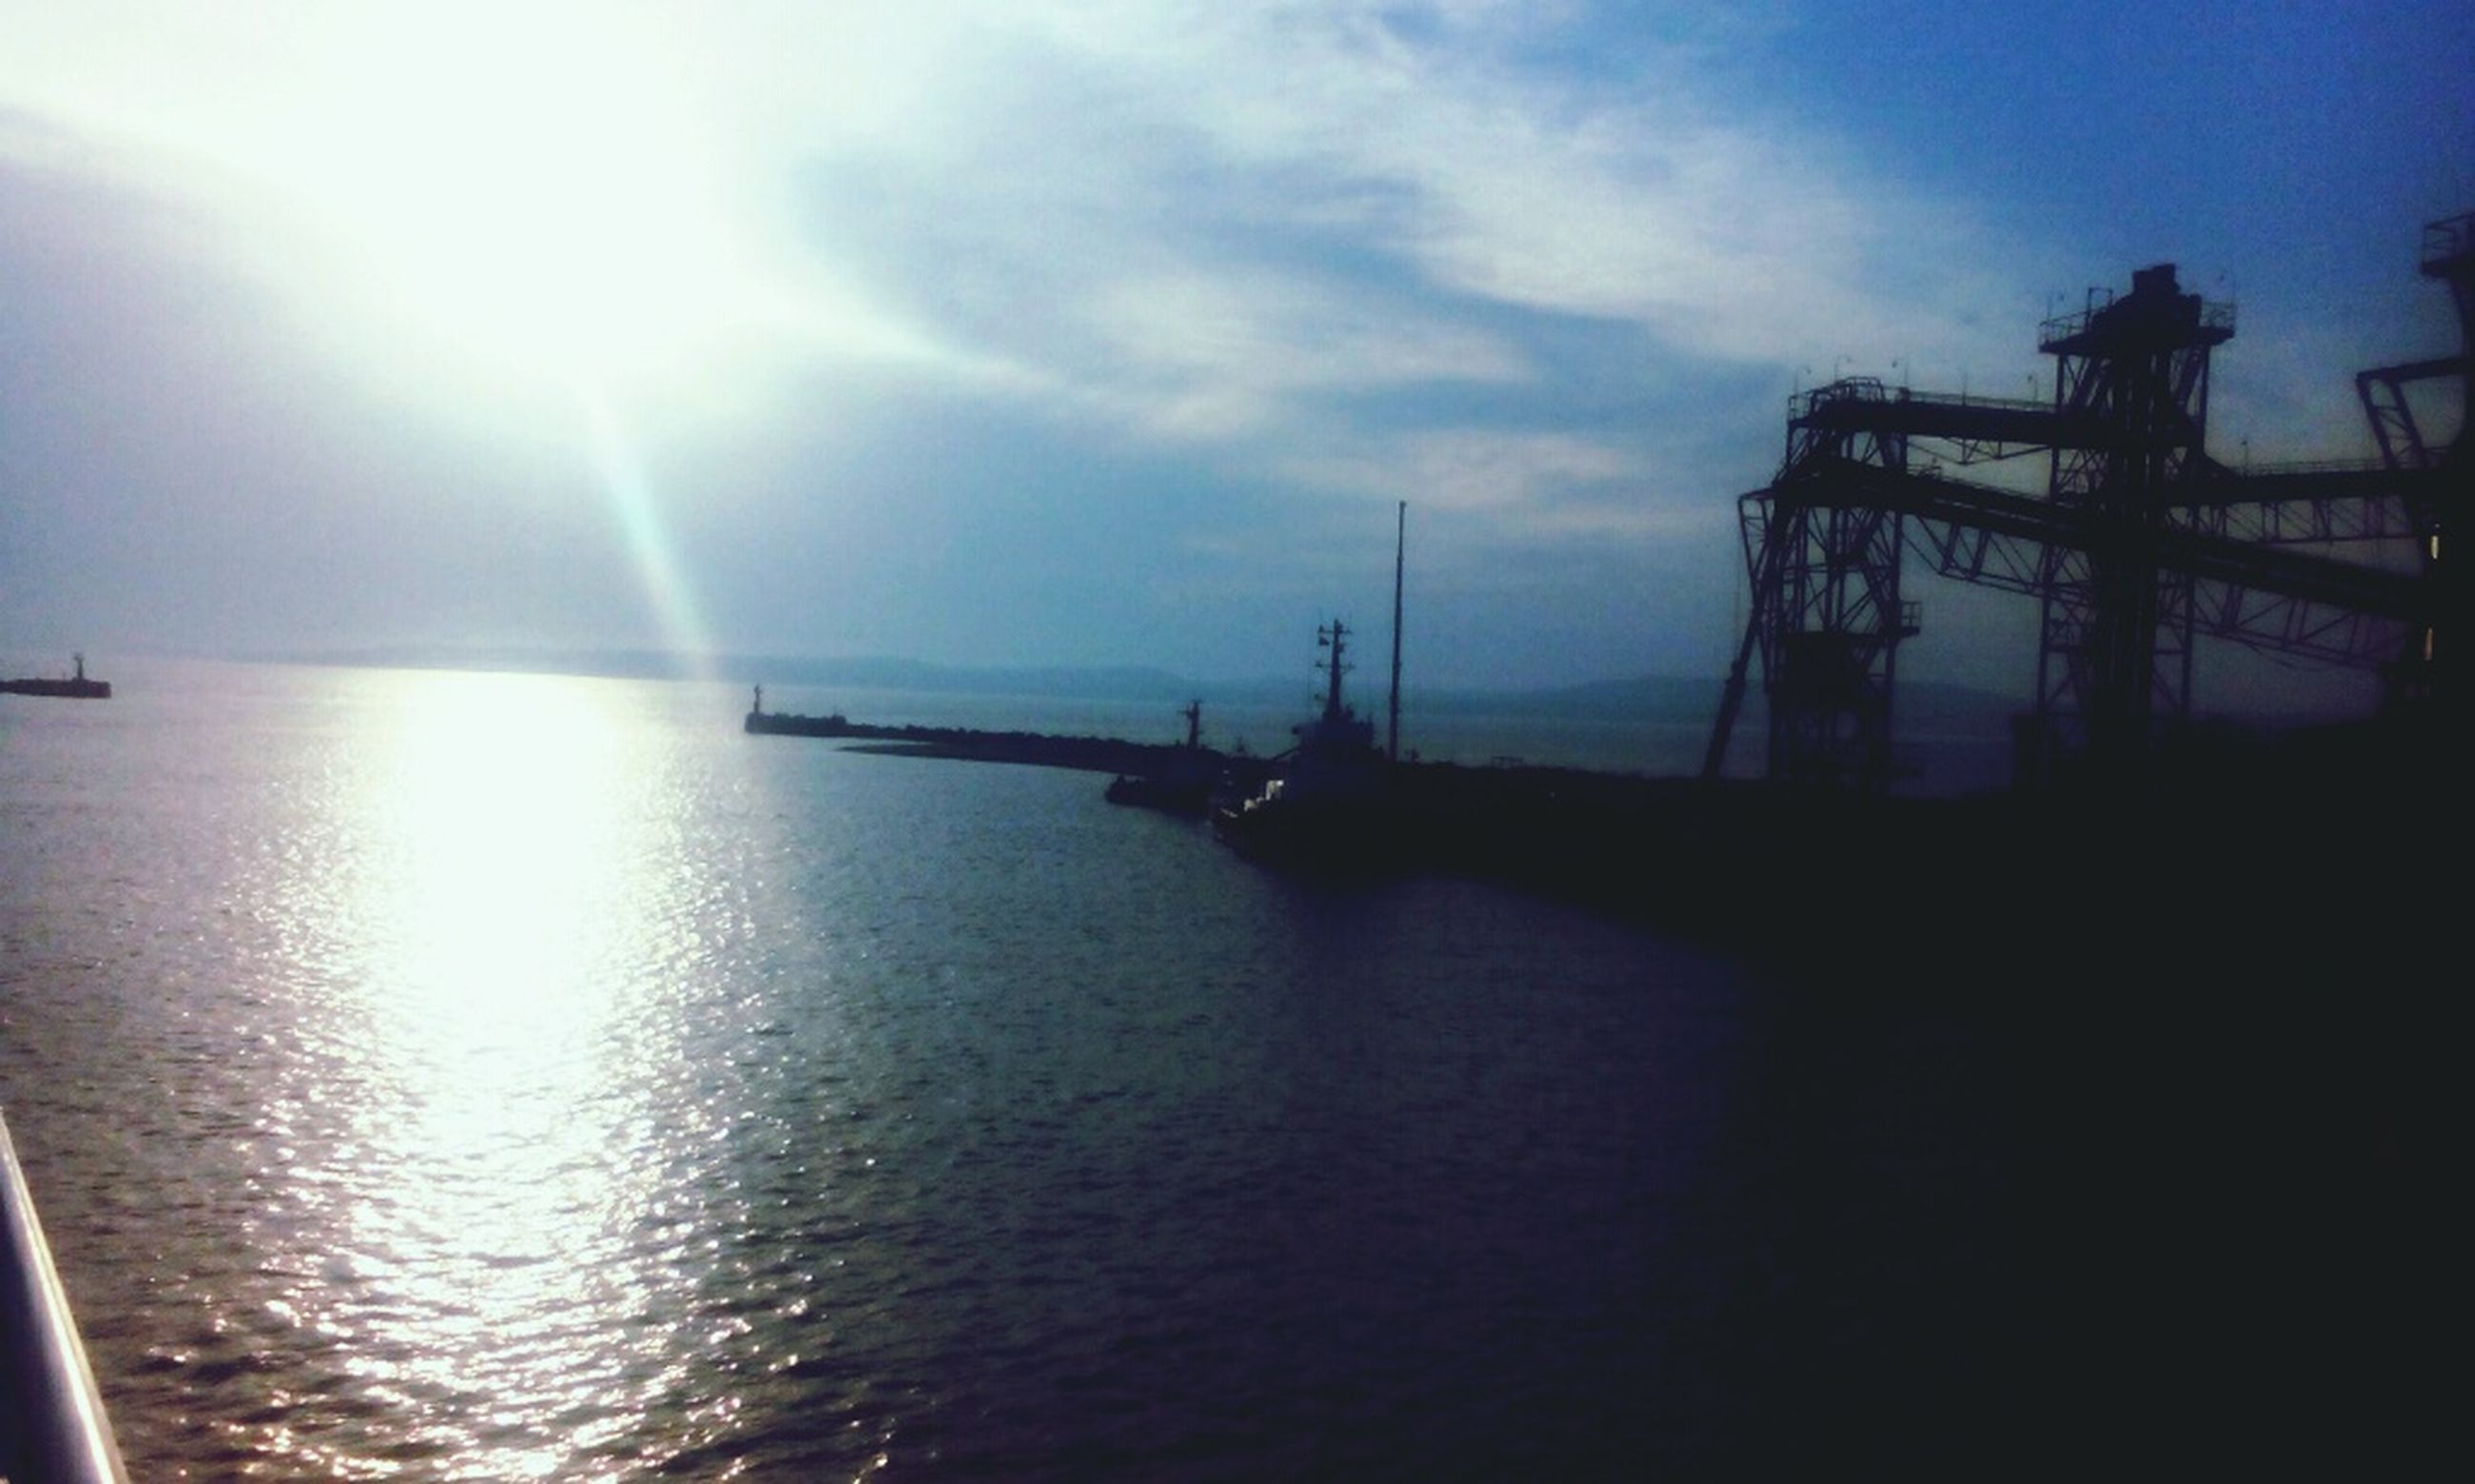 water, sea, nautical vessel, sky, transportation, waterfront, sun, silhouette, tranquility, mode of transport, sunset, tranquil scene, nature, boat, scenics, harbor, reflection, beauty in nature, sunlight, crane - construction machinery